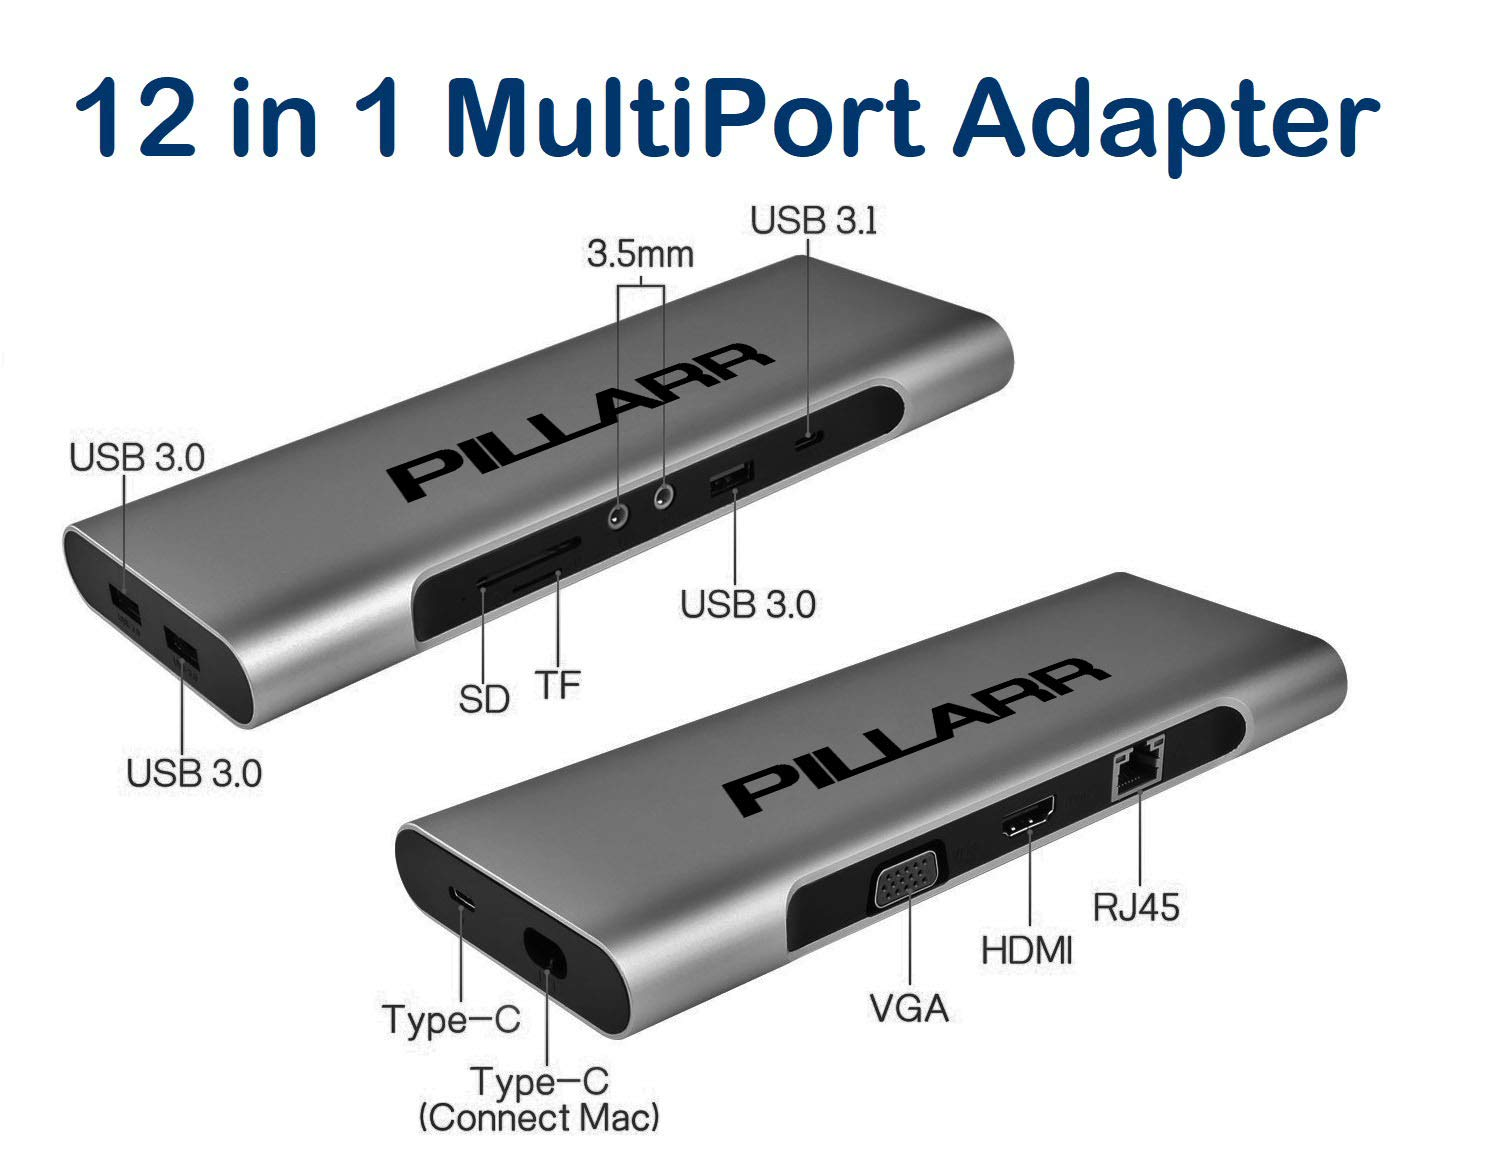 USB-C/Thunderbolt 3 Laptop Mini Docking Station with Power Delivery for MacBook Pro, Dell, HP - 12 in 1 MultiPort Hub Adapter - Aluminum Case in a Compact Design - Compatible with Windows and MacOS by Pillarr (Image #2)